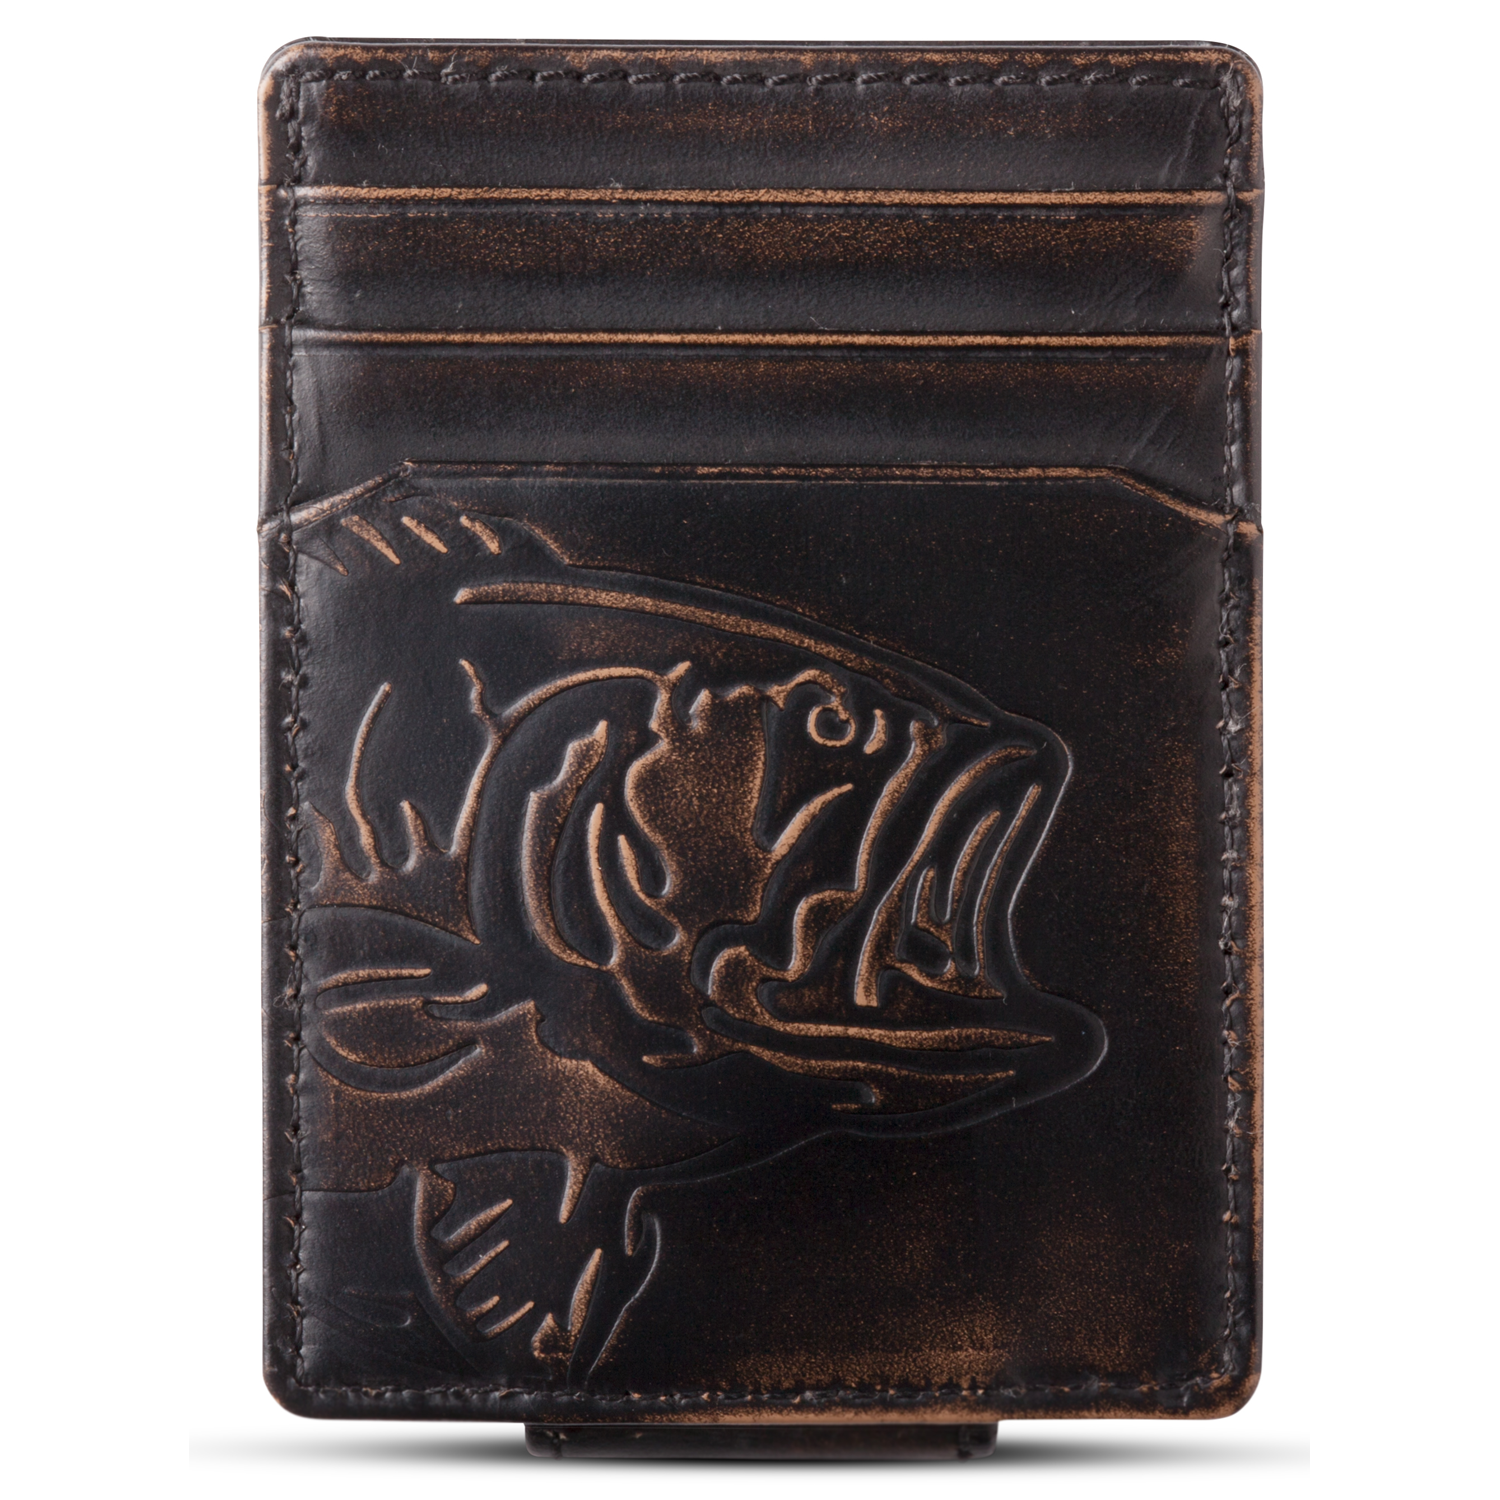 Bass Fish Magnetic Front Pocket Wallet in Black